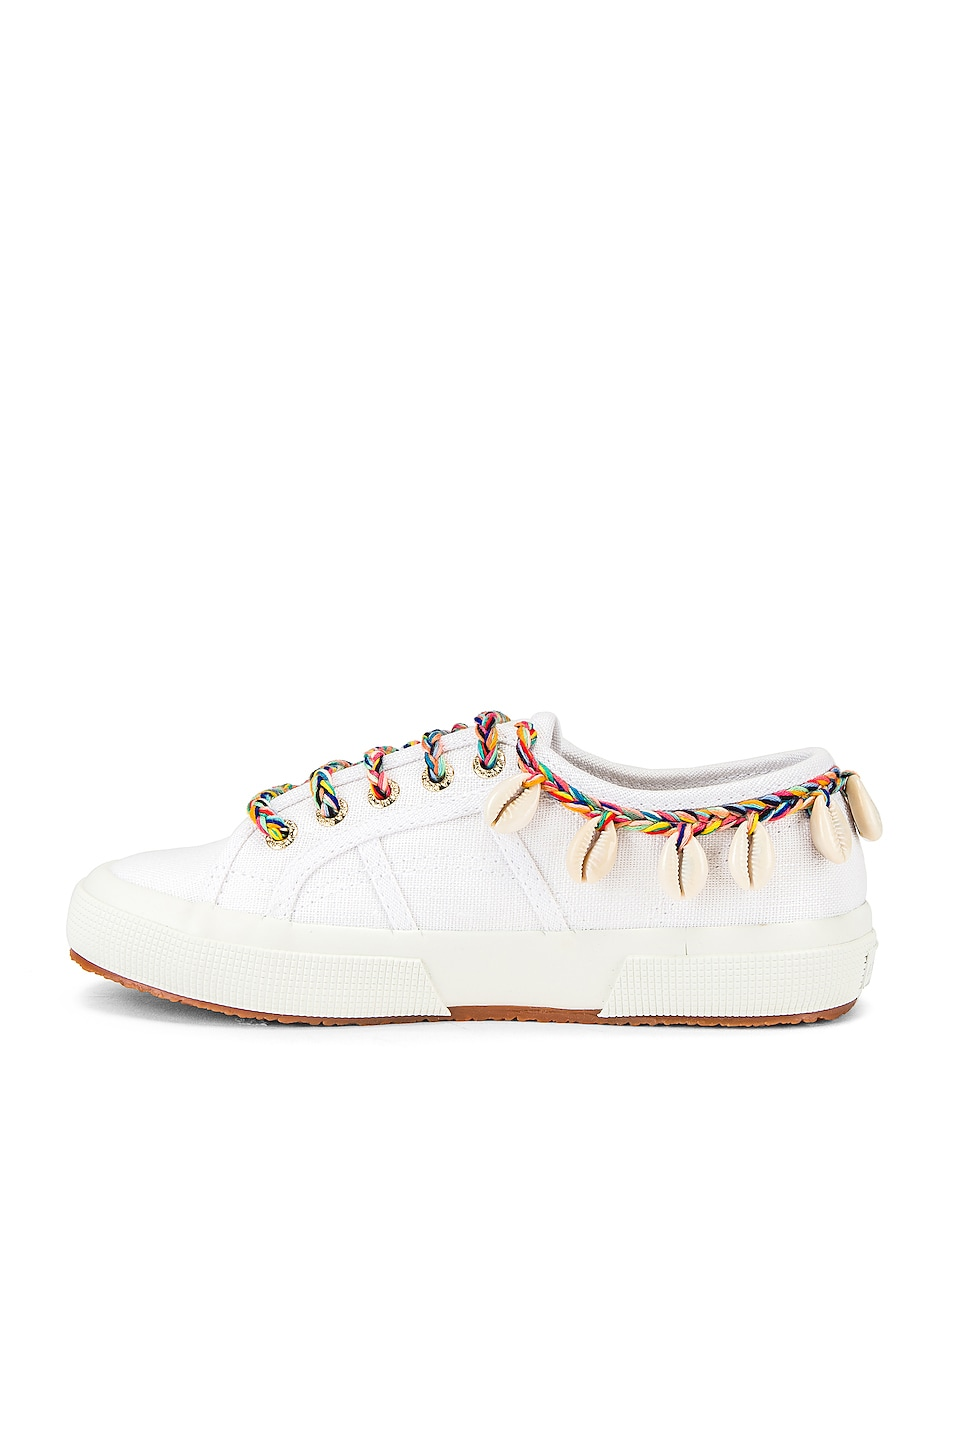 Image 5 of ALANUI x SUPERGA Low Top Cowrie Shells Sneaker in White Multi